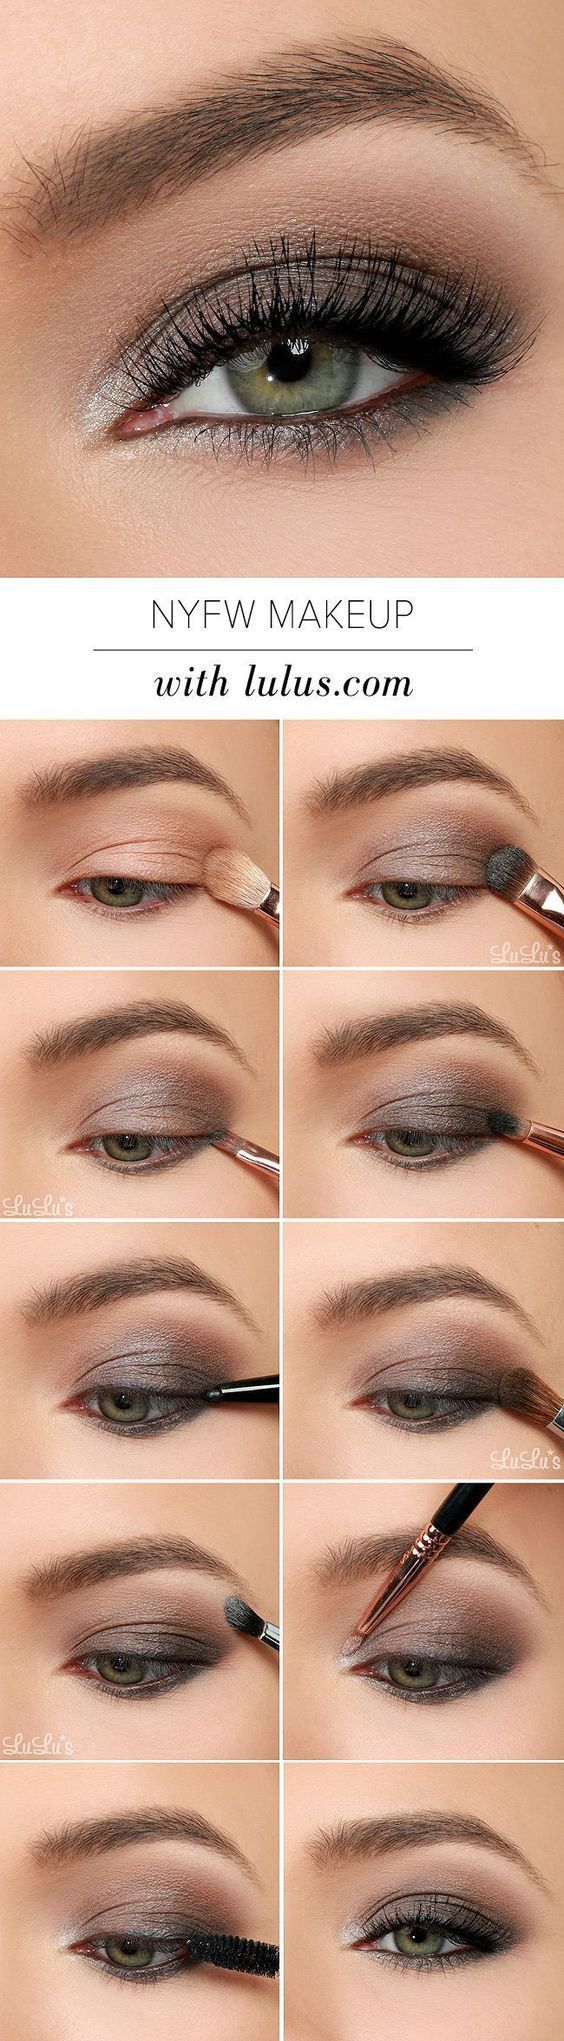 16 Effective Makeup Tricks for Those Moments When You're Sick - Page 3 of 5 - Trend To Wear